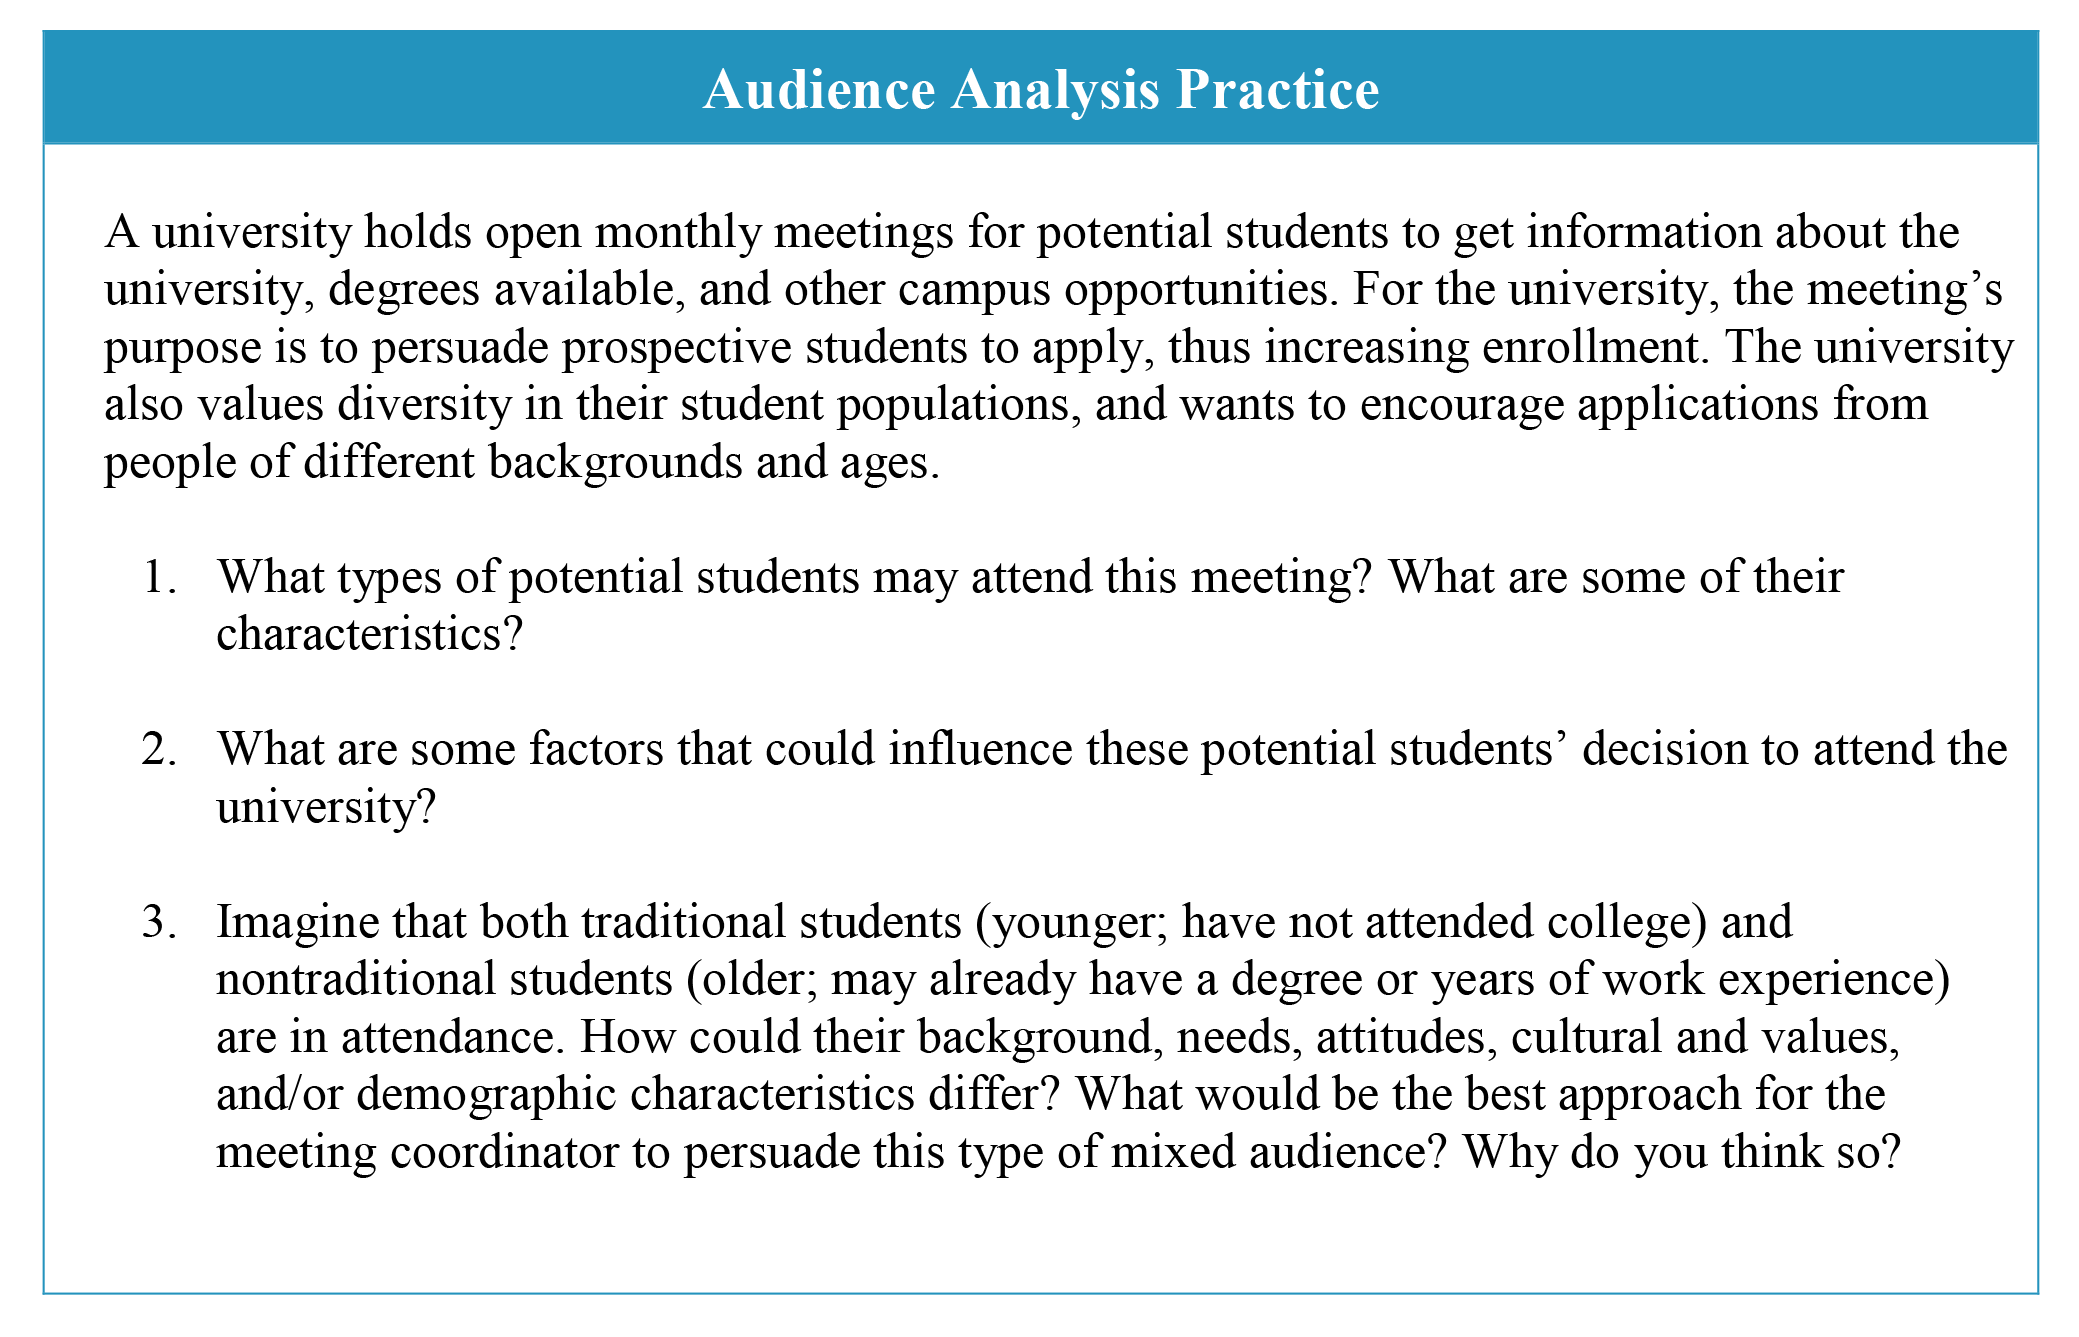 Text presenting scenarios for audience analysis practice.